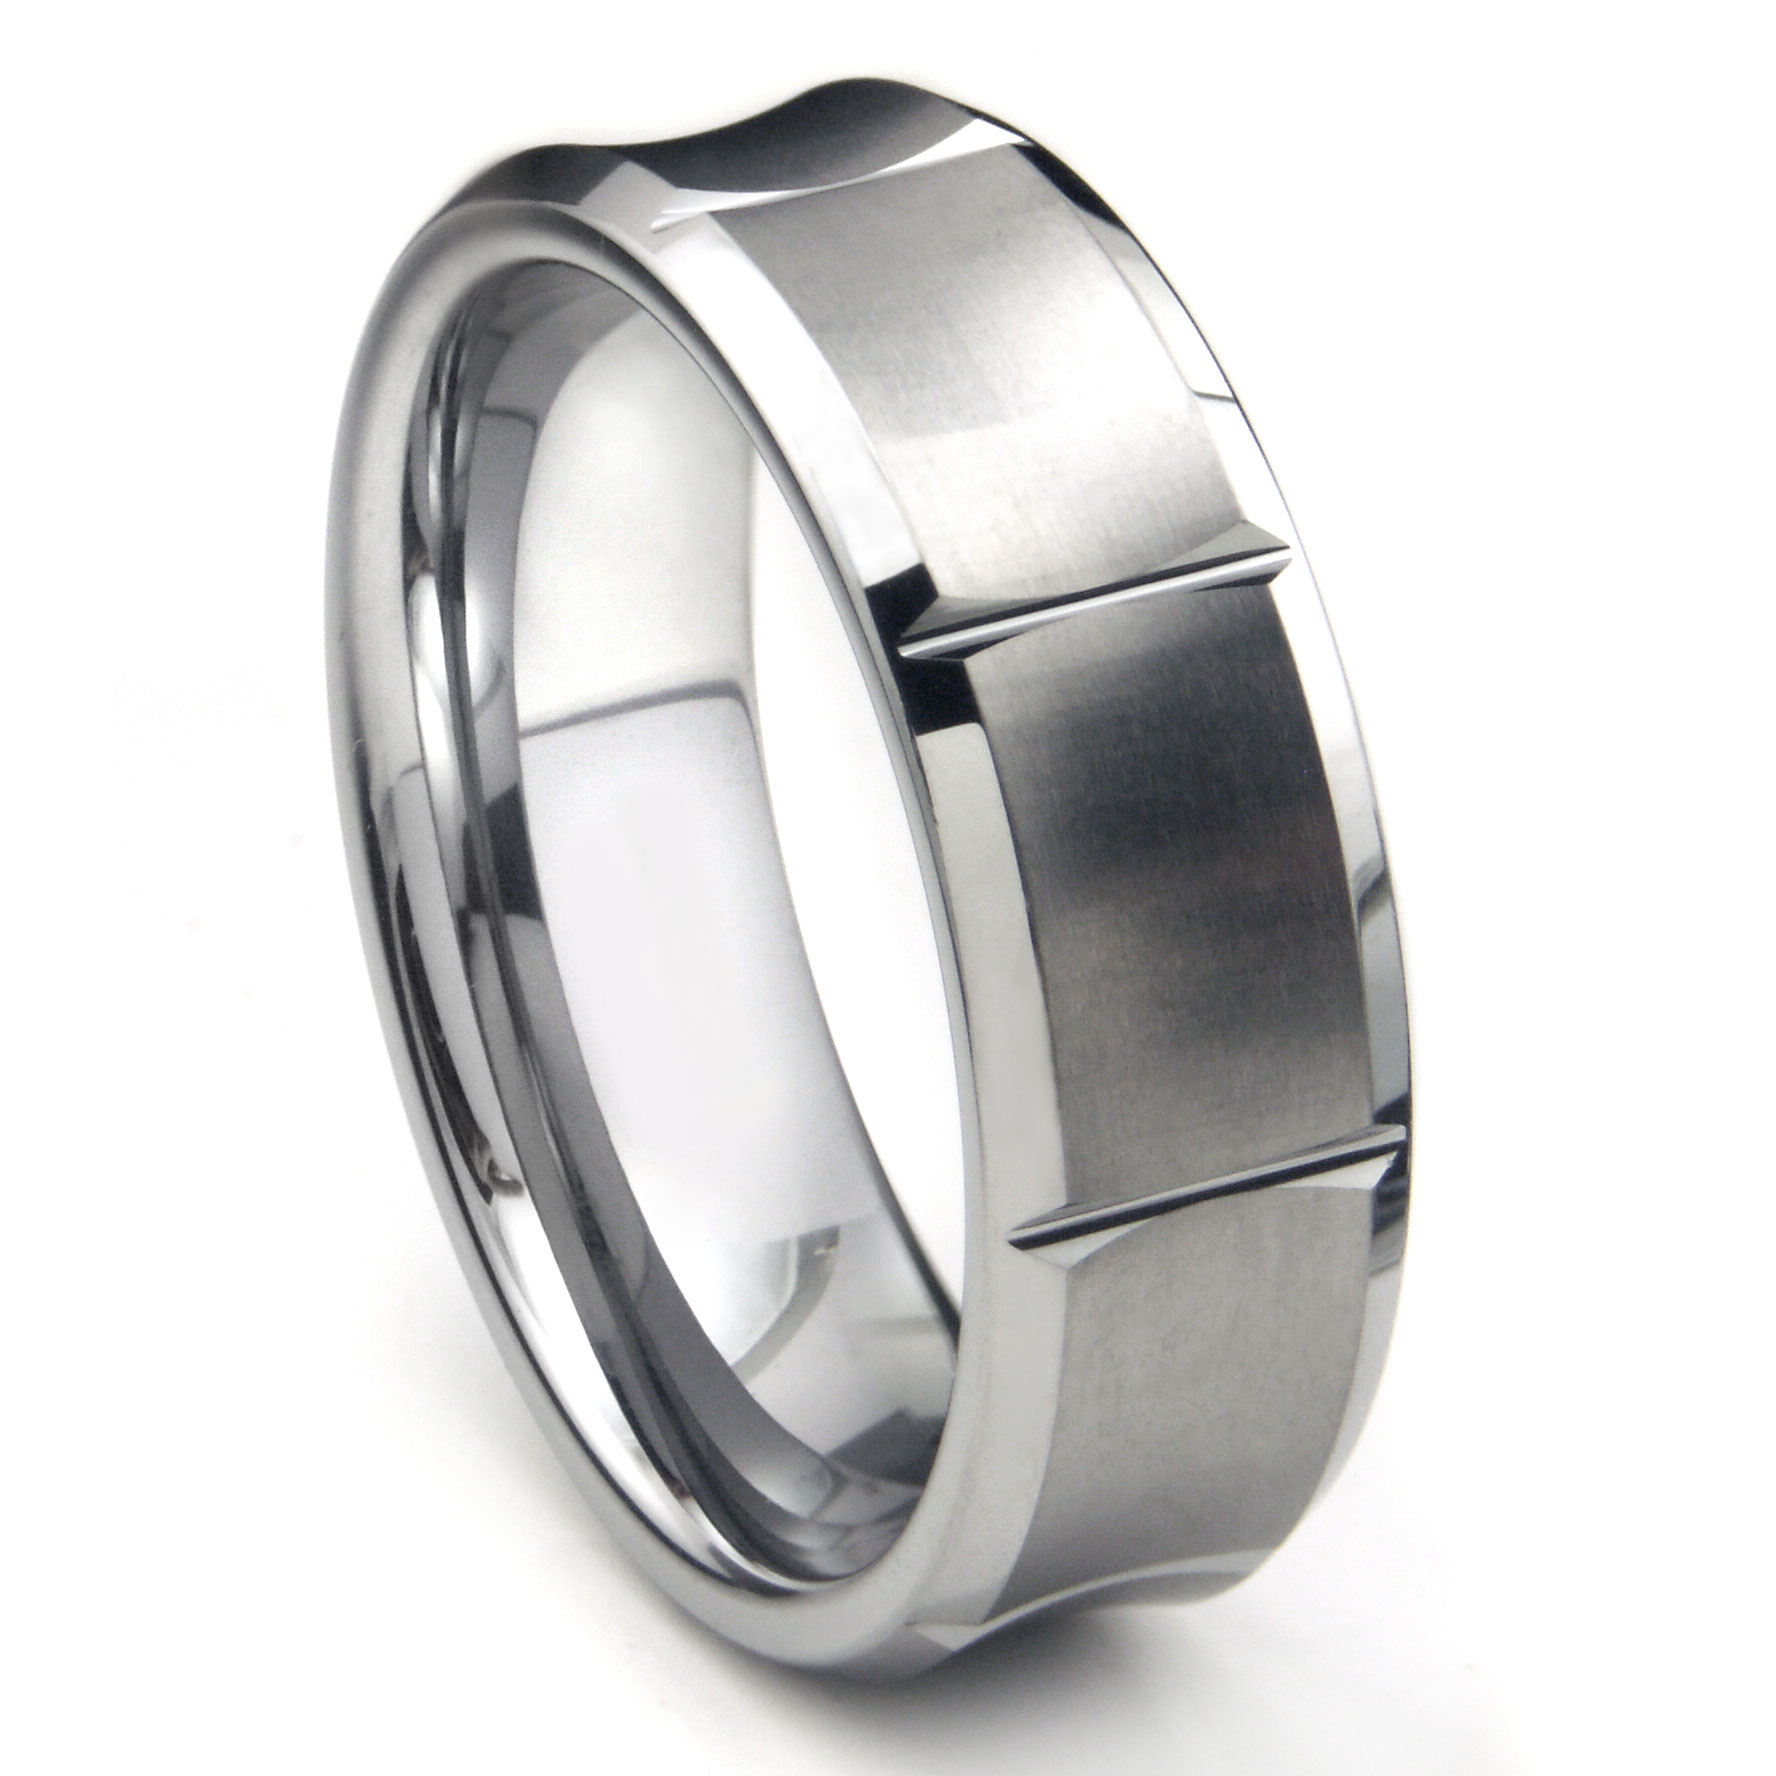 tungsten carbide concave wedding band ring w/ horizontal grooves